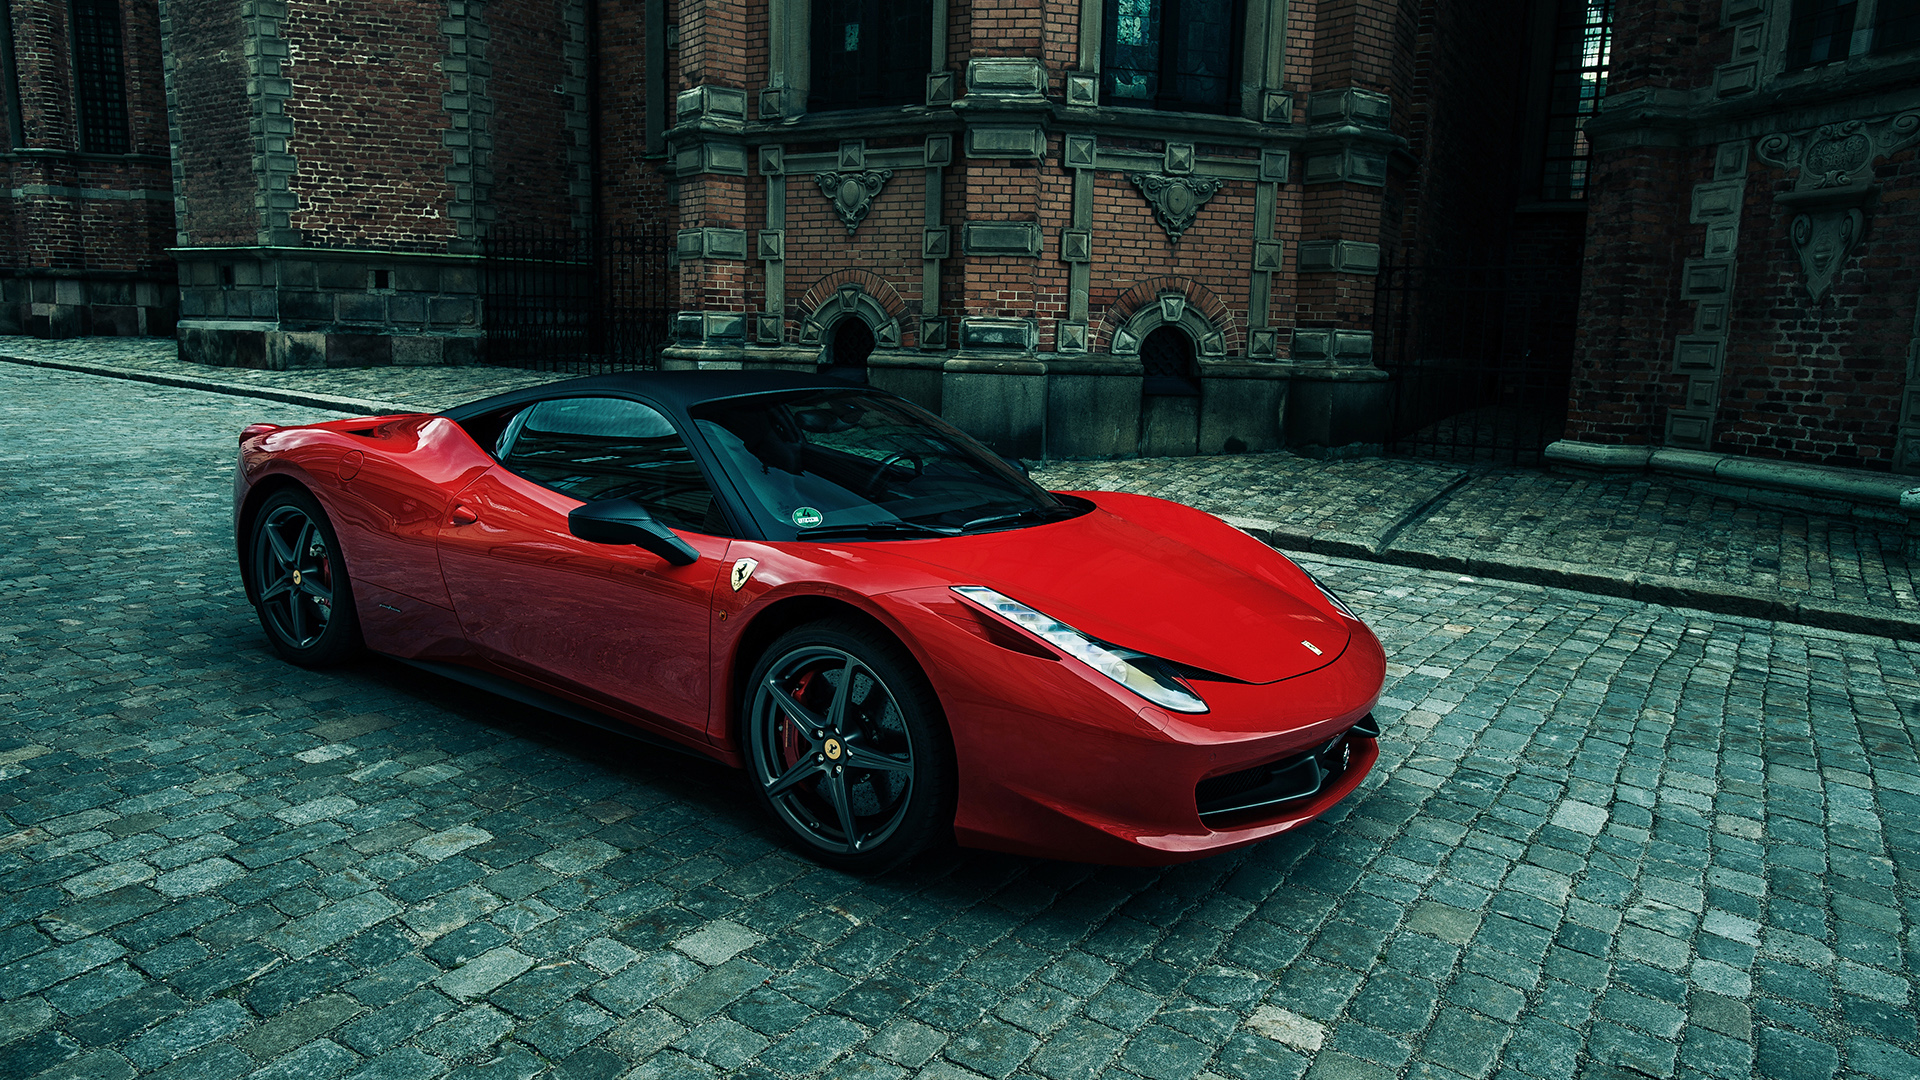 Sporty Ferrari 458 Italia Wallpaper HD Car Wallpapers 1920x1080